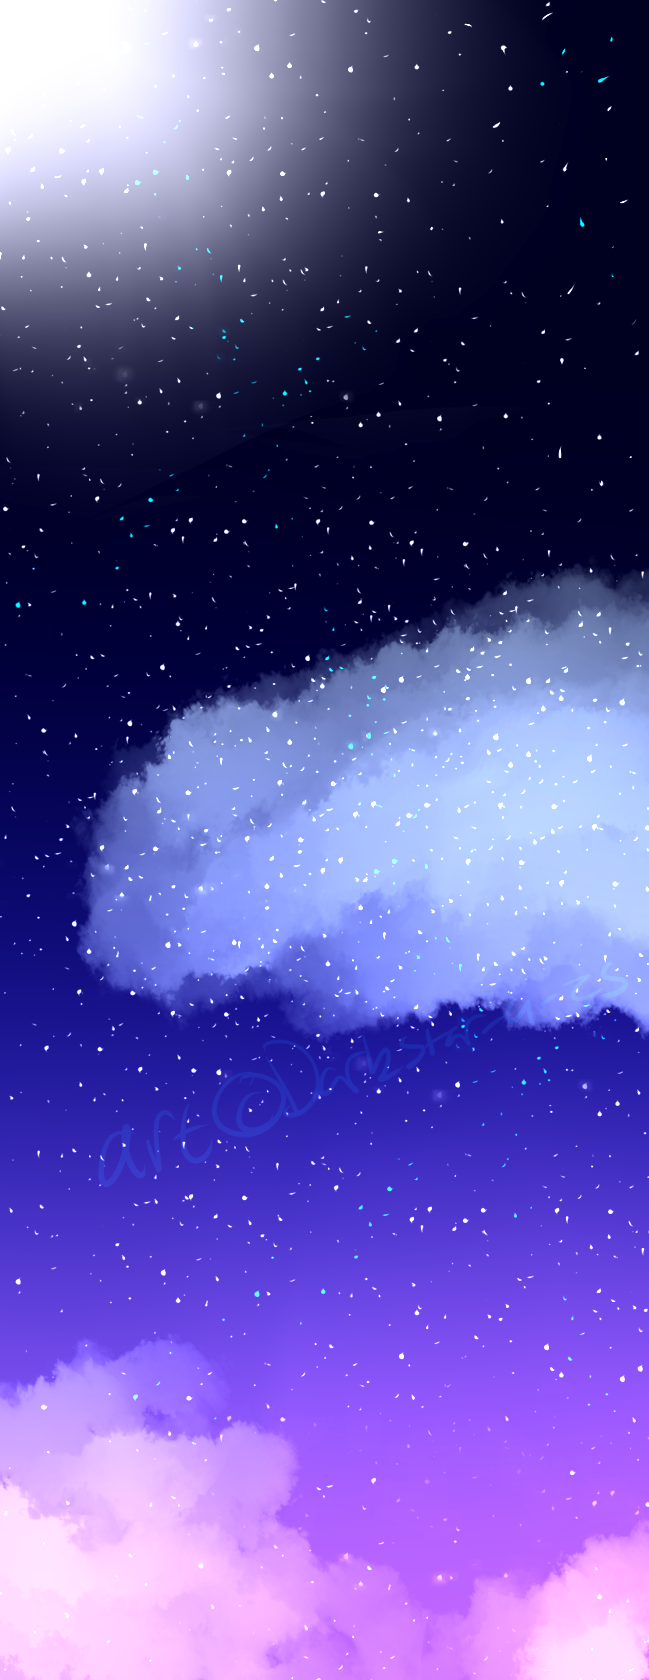 Night sky custom box -FREE TO USE- by Darkstar-The-Great